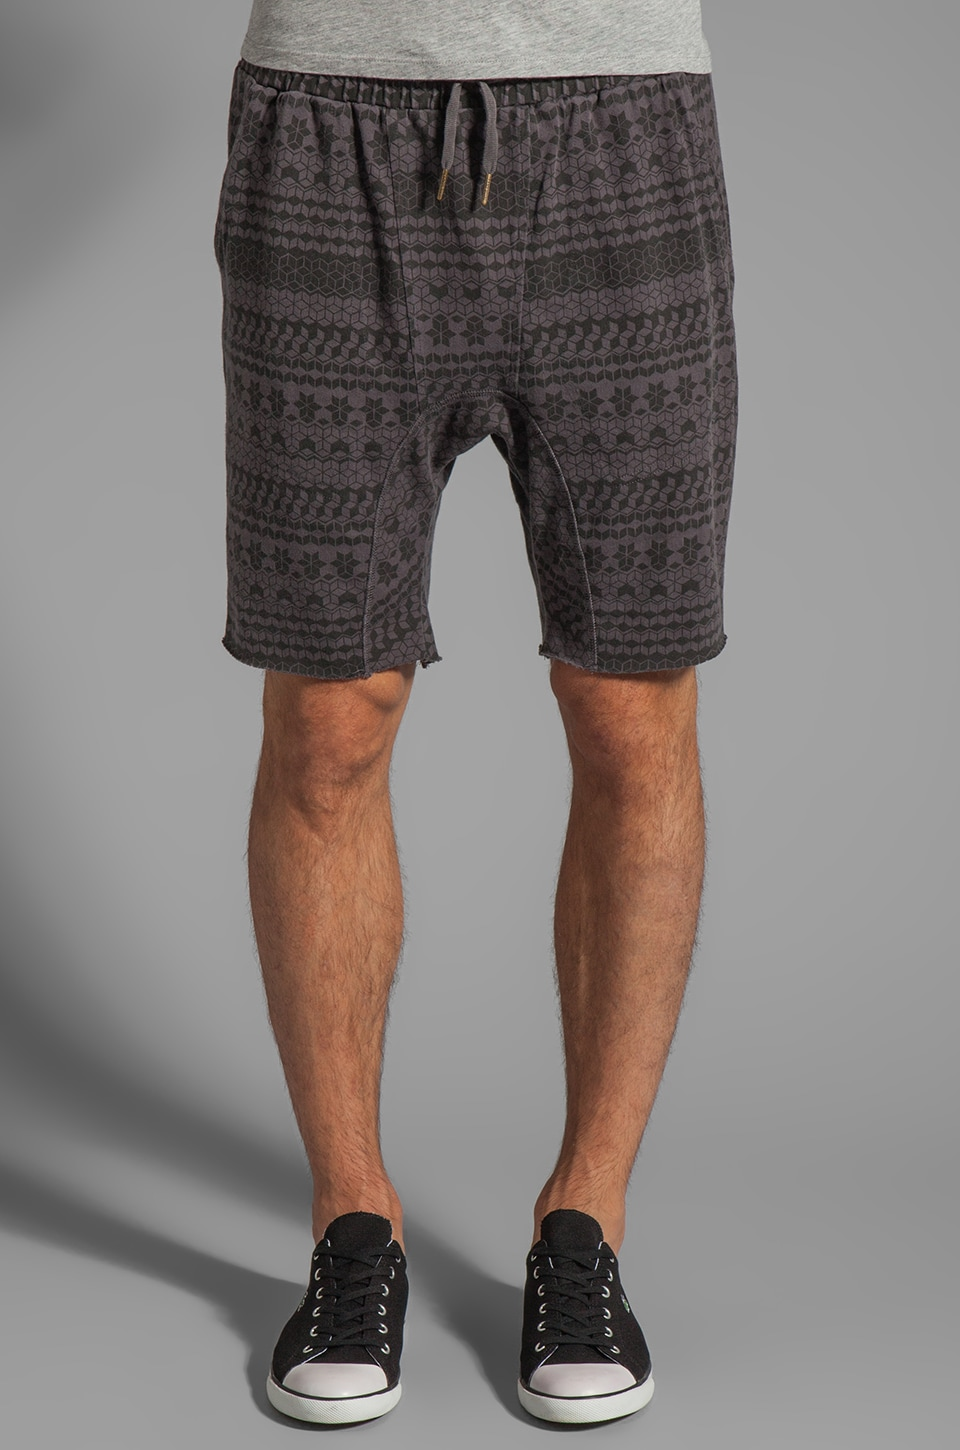 Zanerobe Das Buro Short in Charcoal